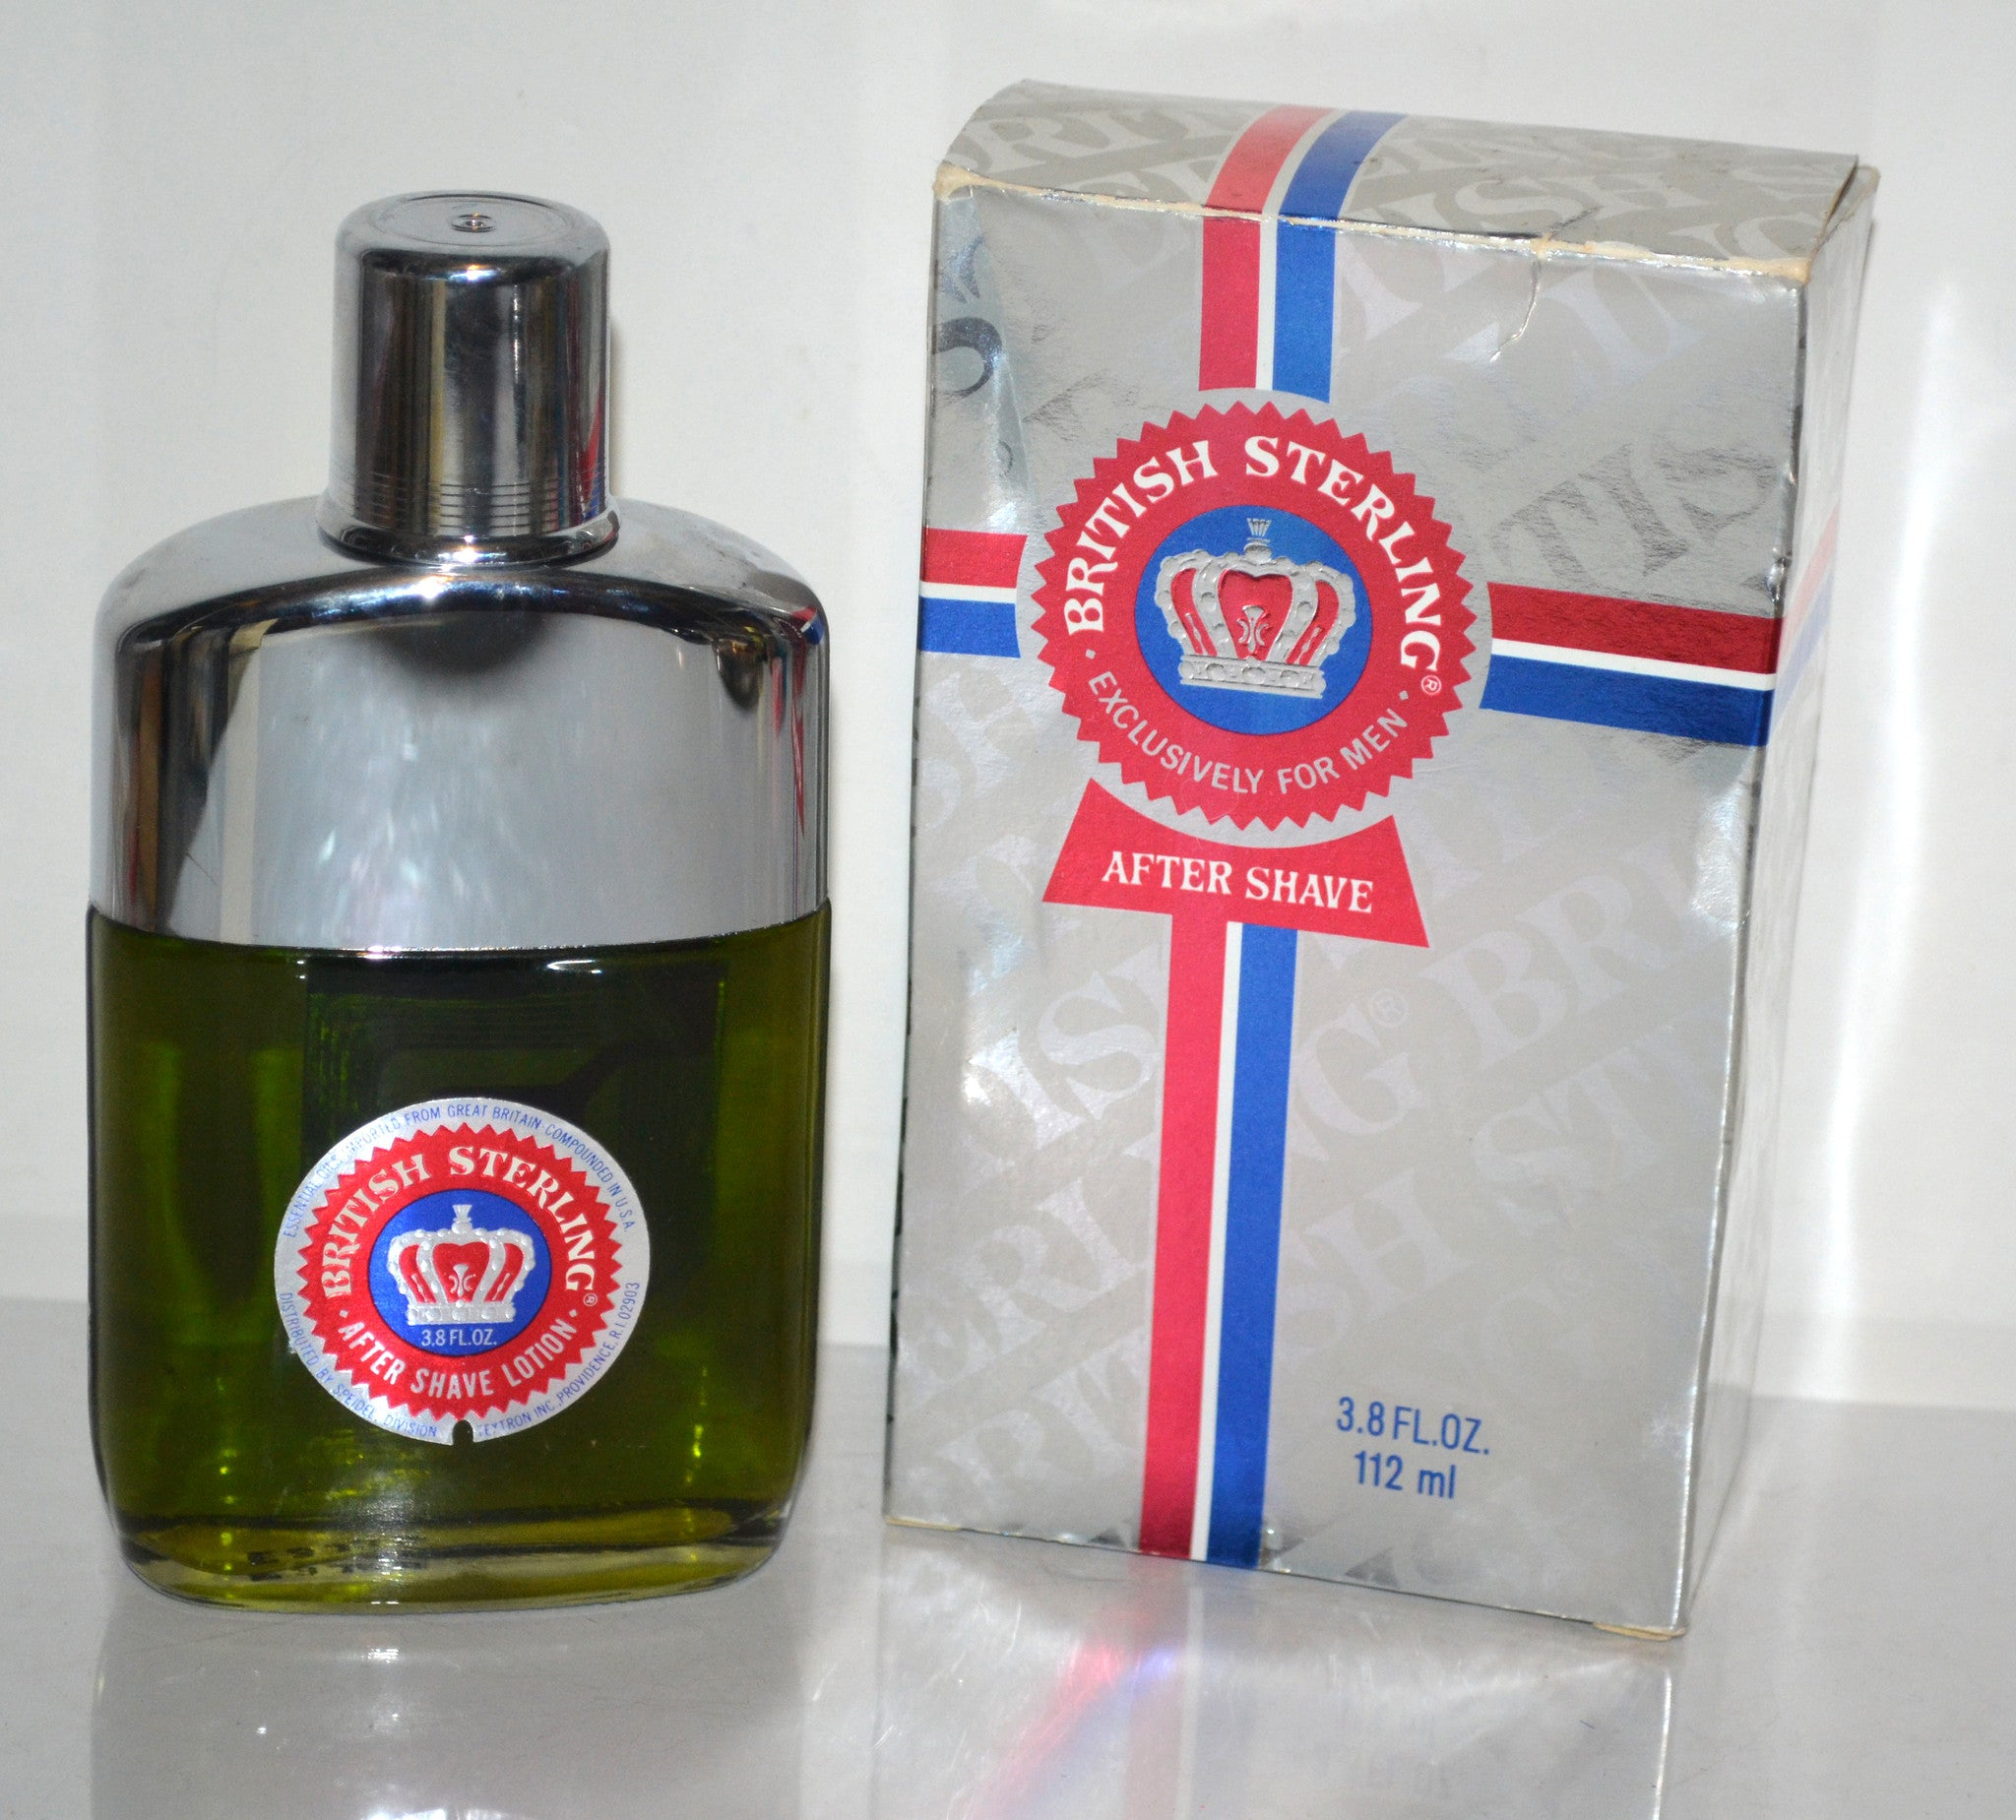 British Sterling After Shave By Speidel